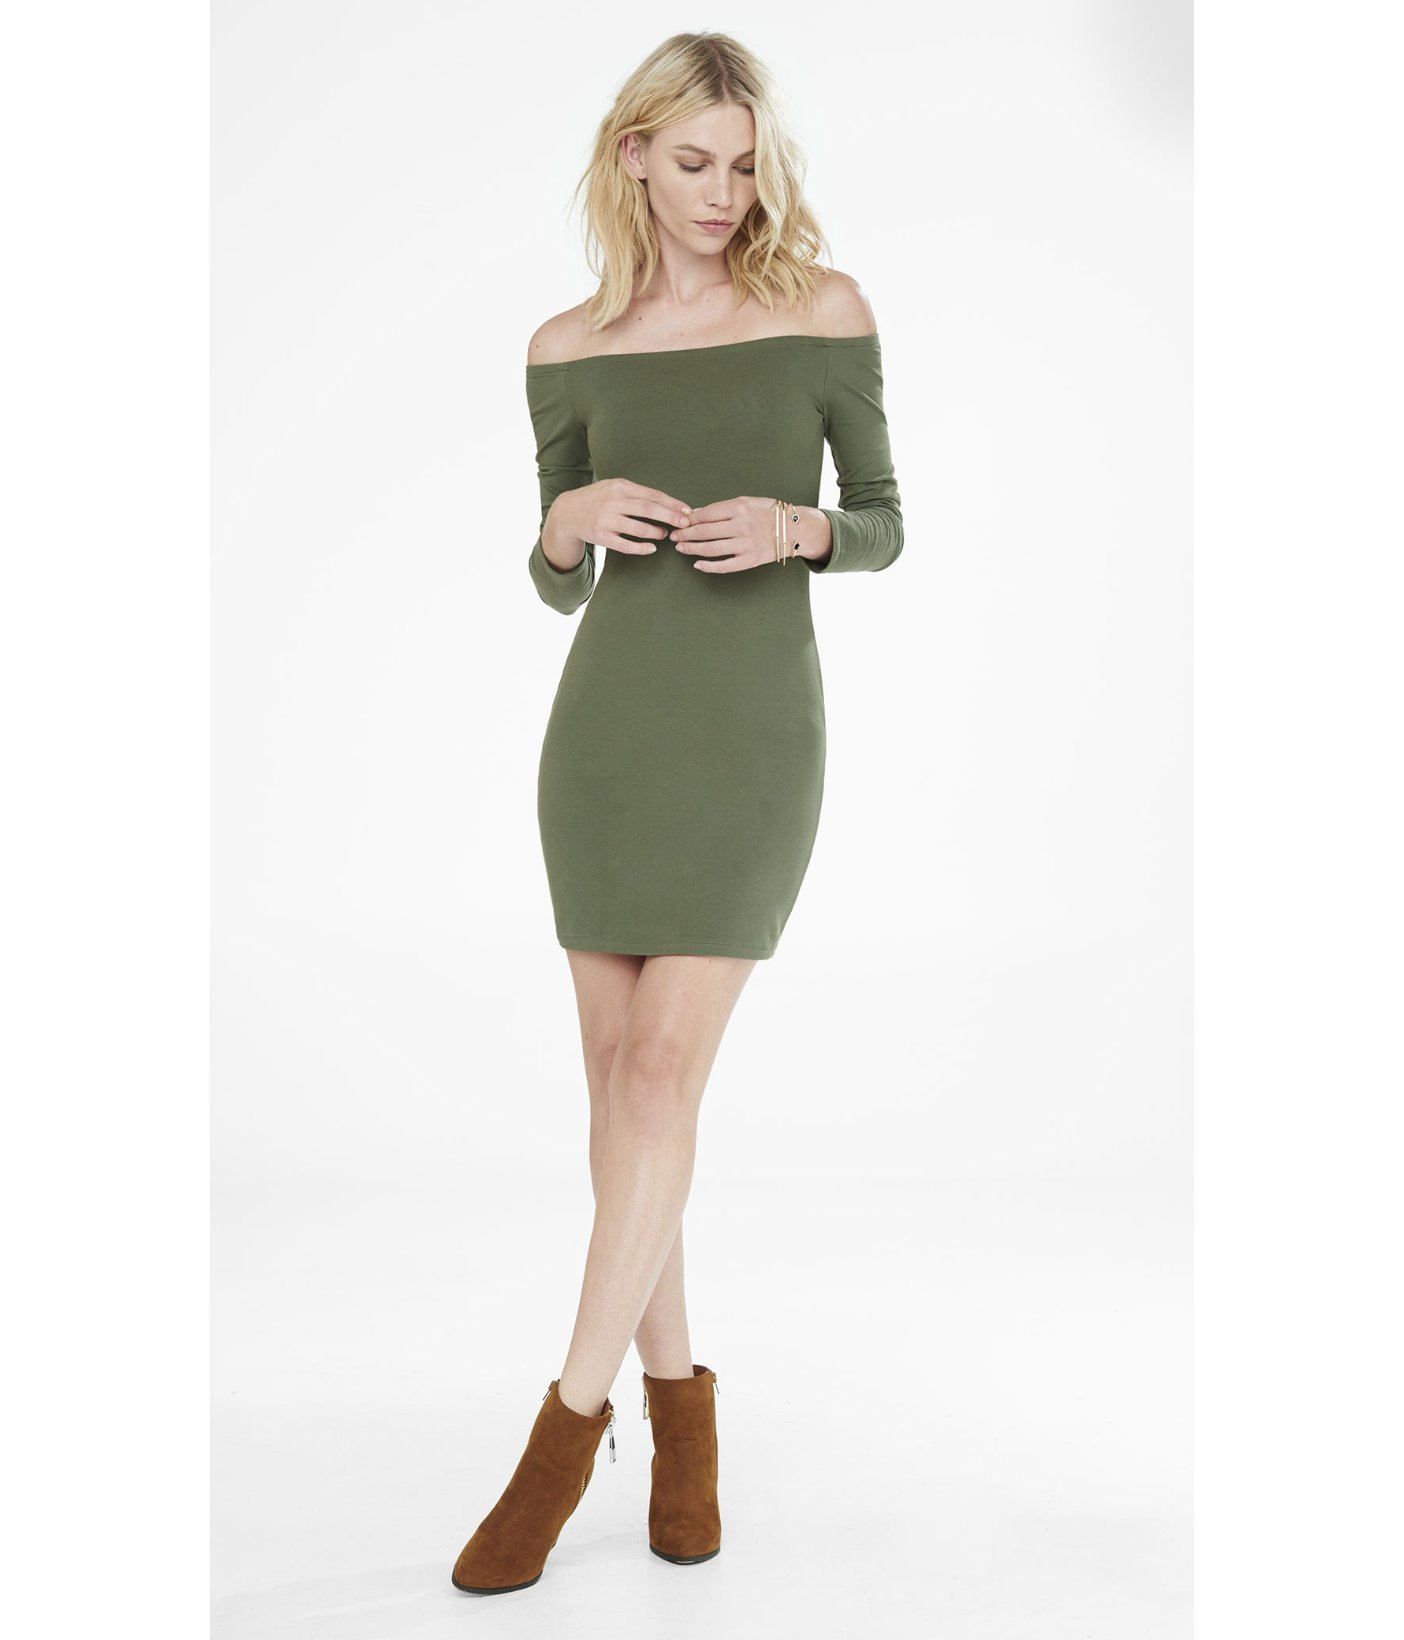 abb7704022ea Lyst - Express Olive Fitted Off The Shoulder Dress in Green